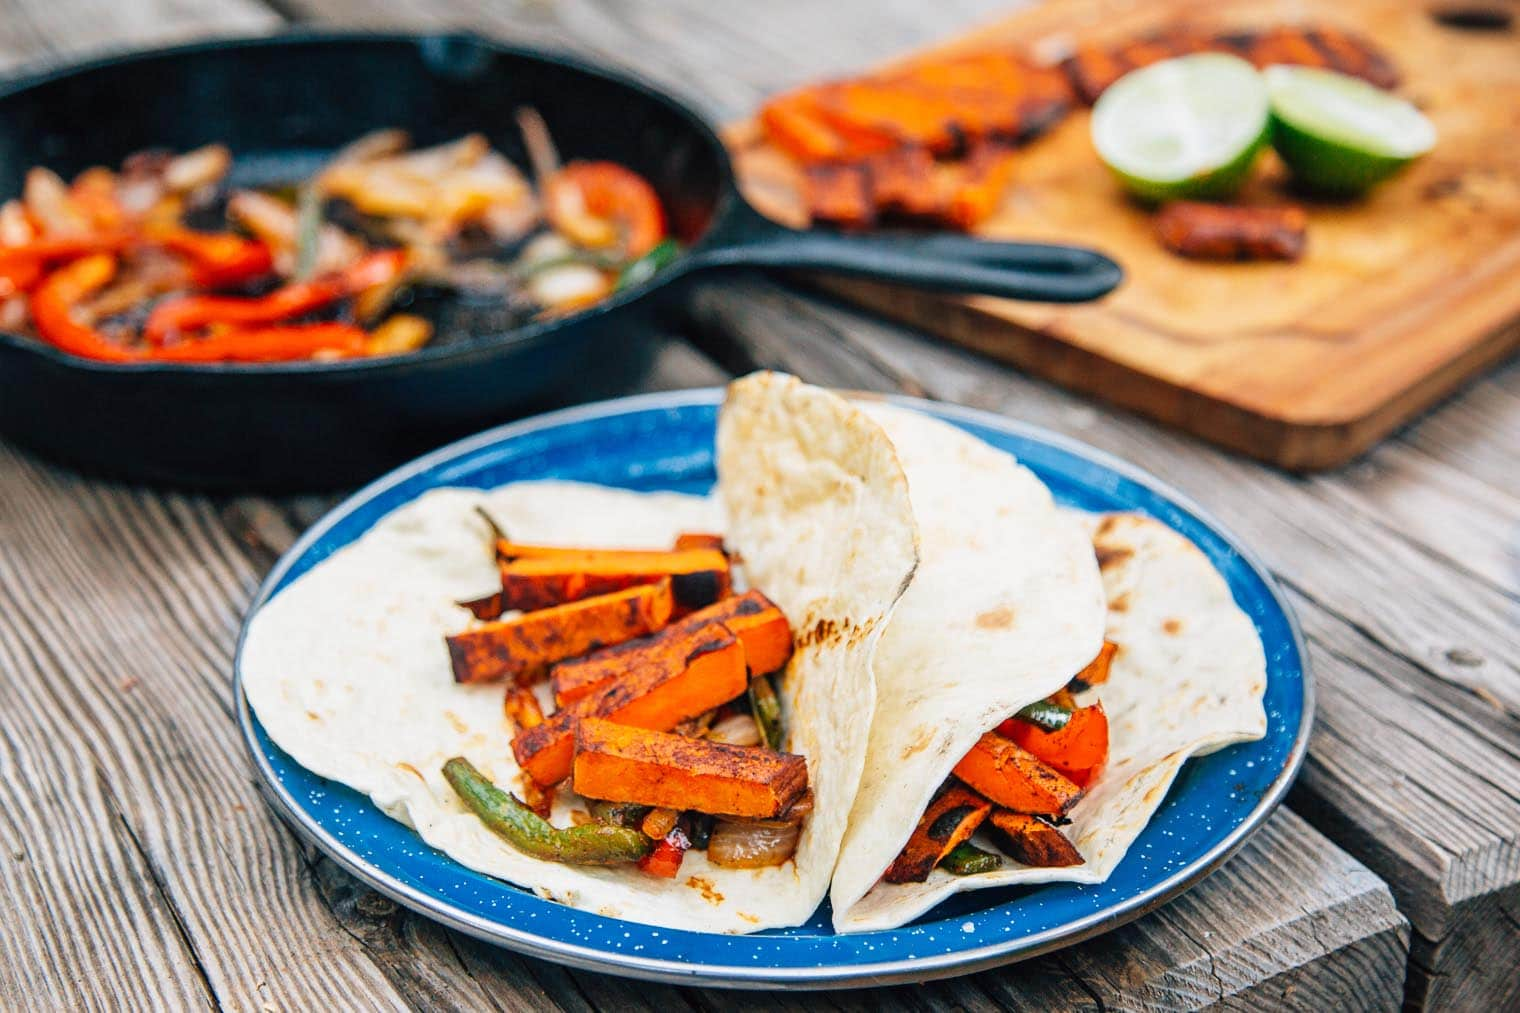 Grilled sweet potatoes and vegetables in a flour tortilla